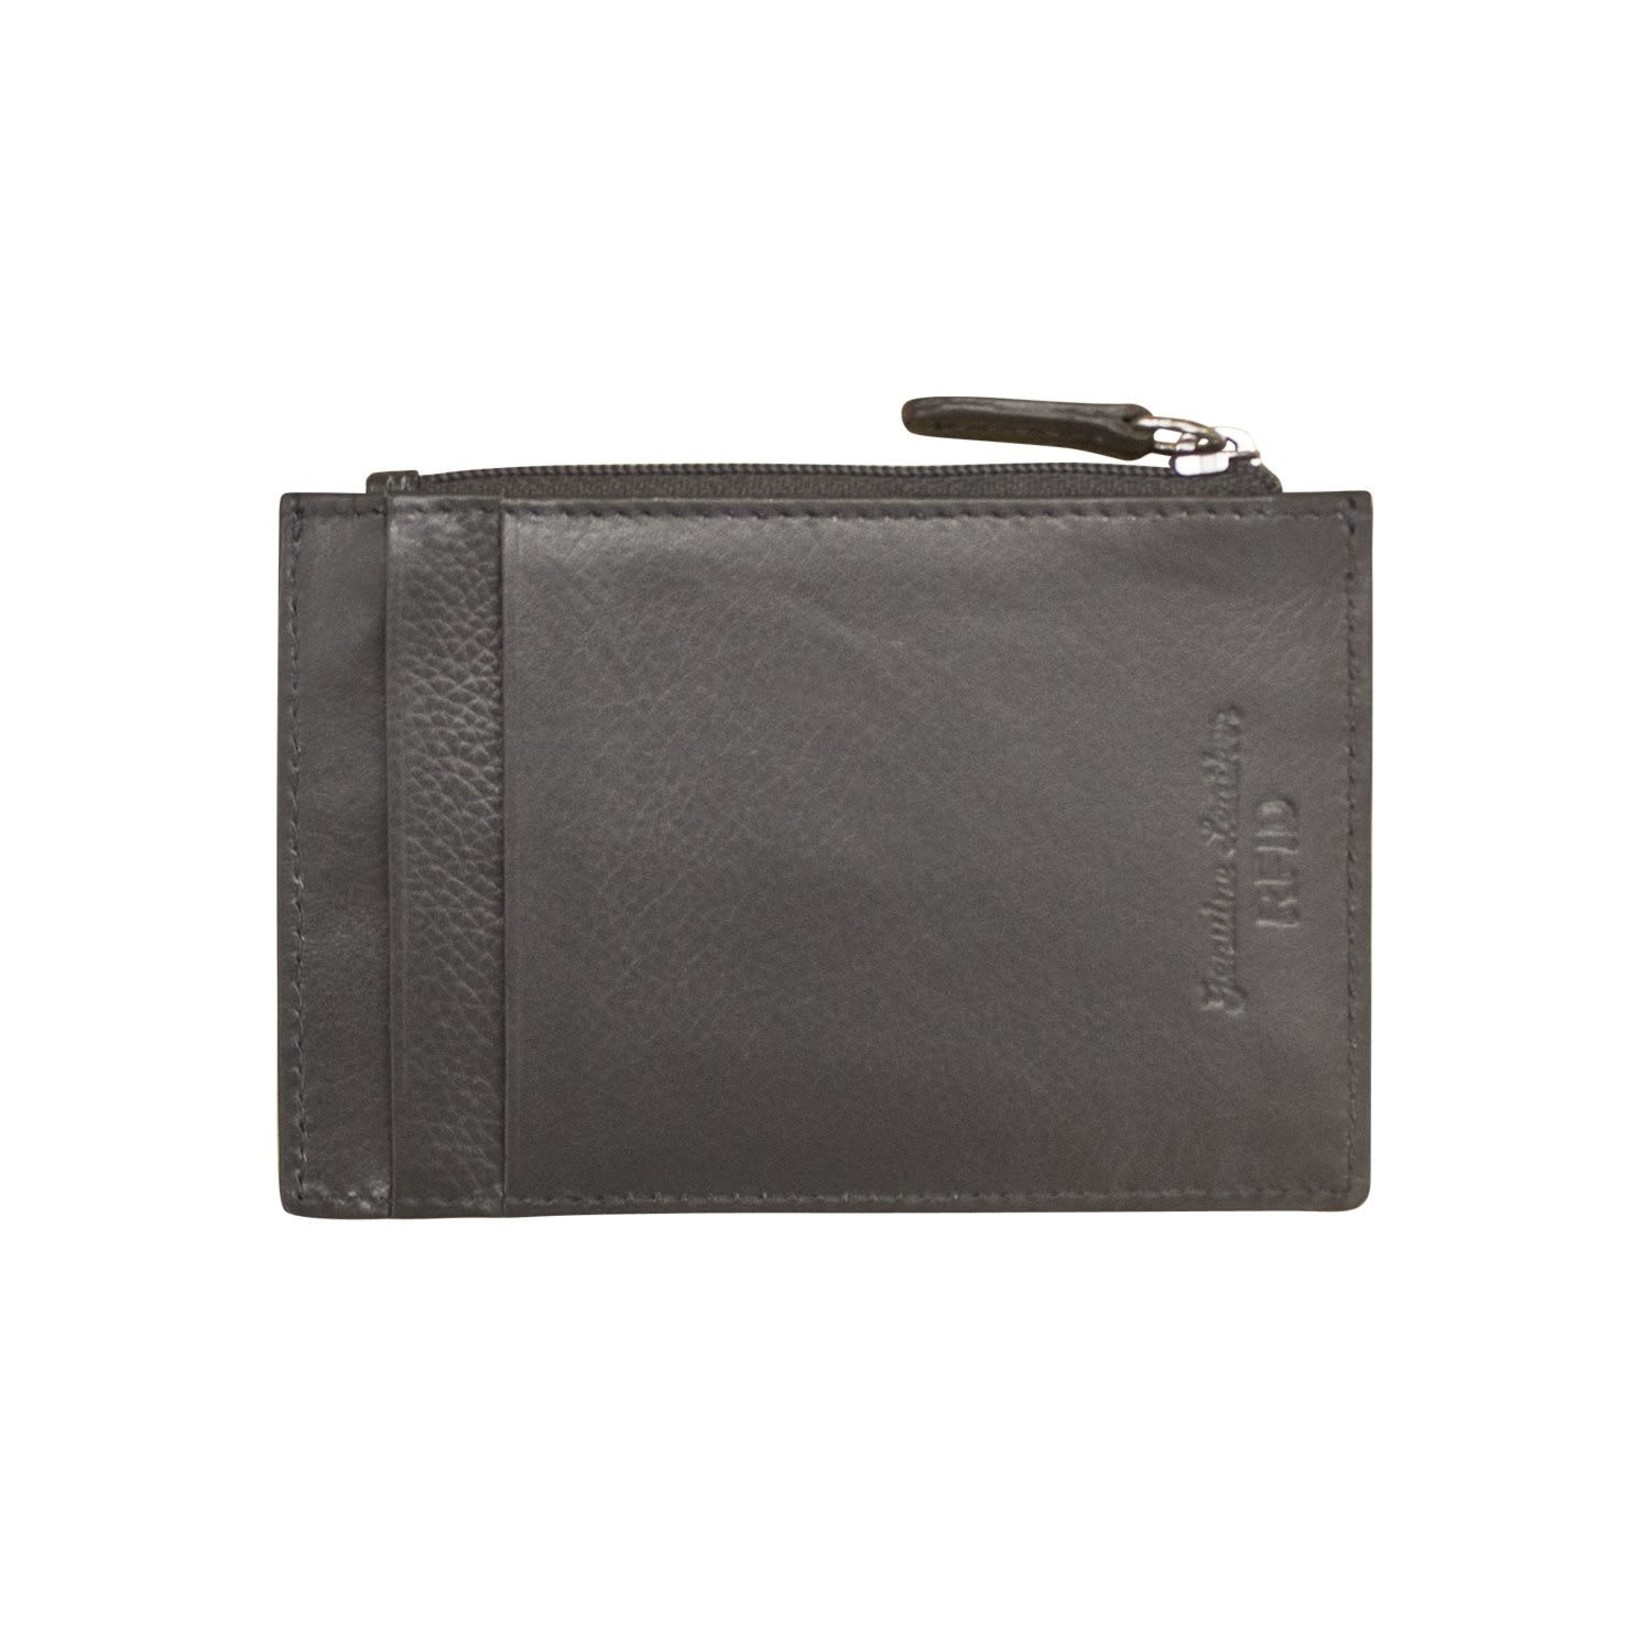 Leather Handbags and Accessories 7416 Gray - RFID Card Holder